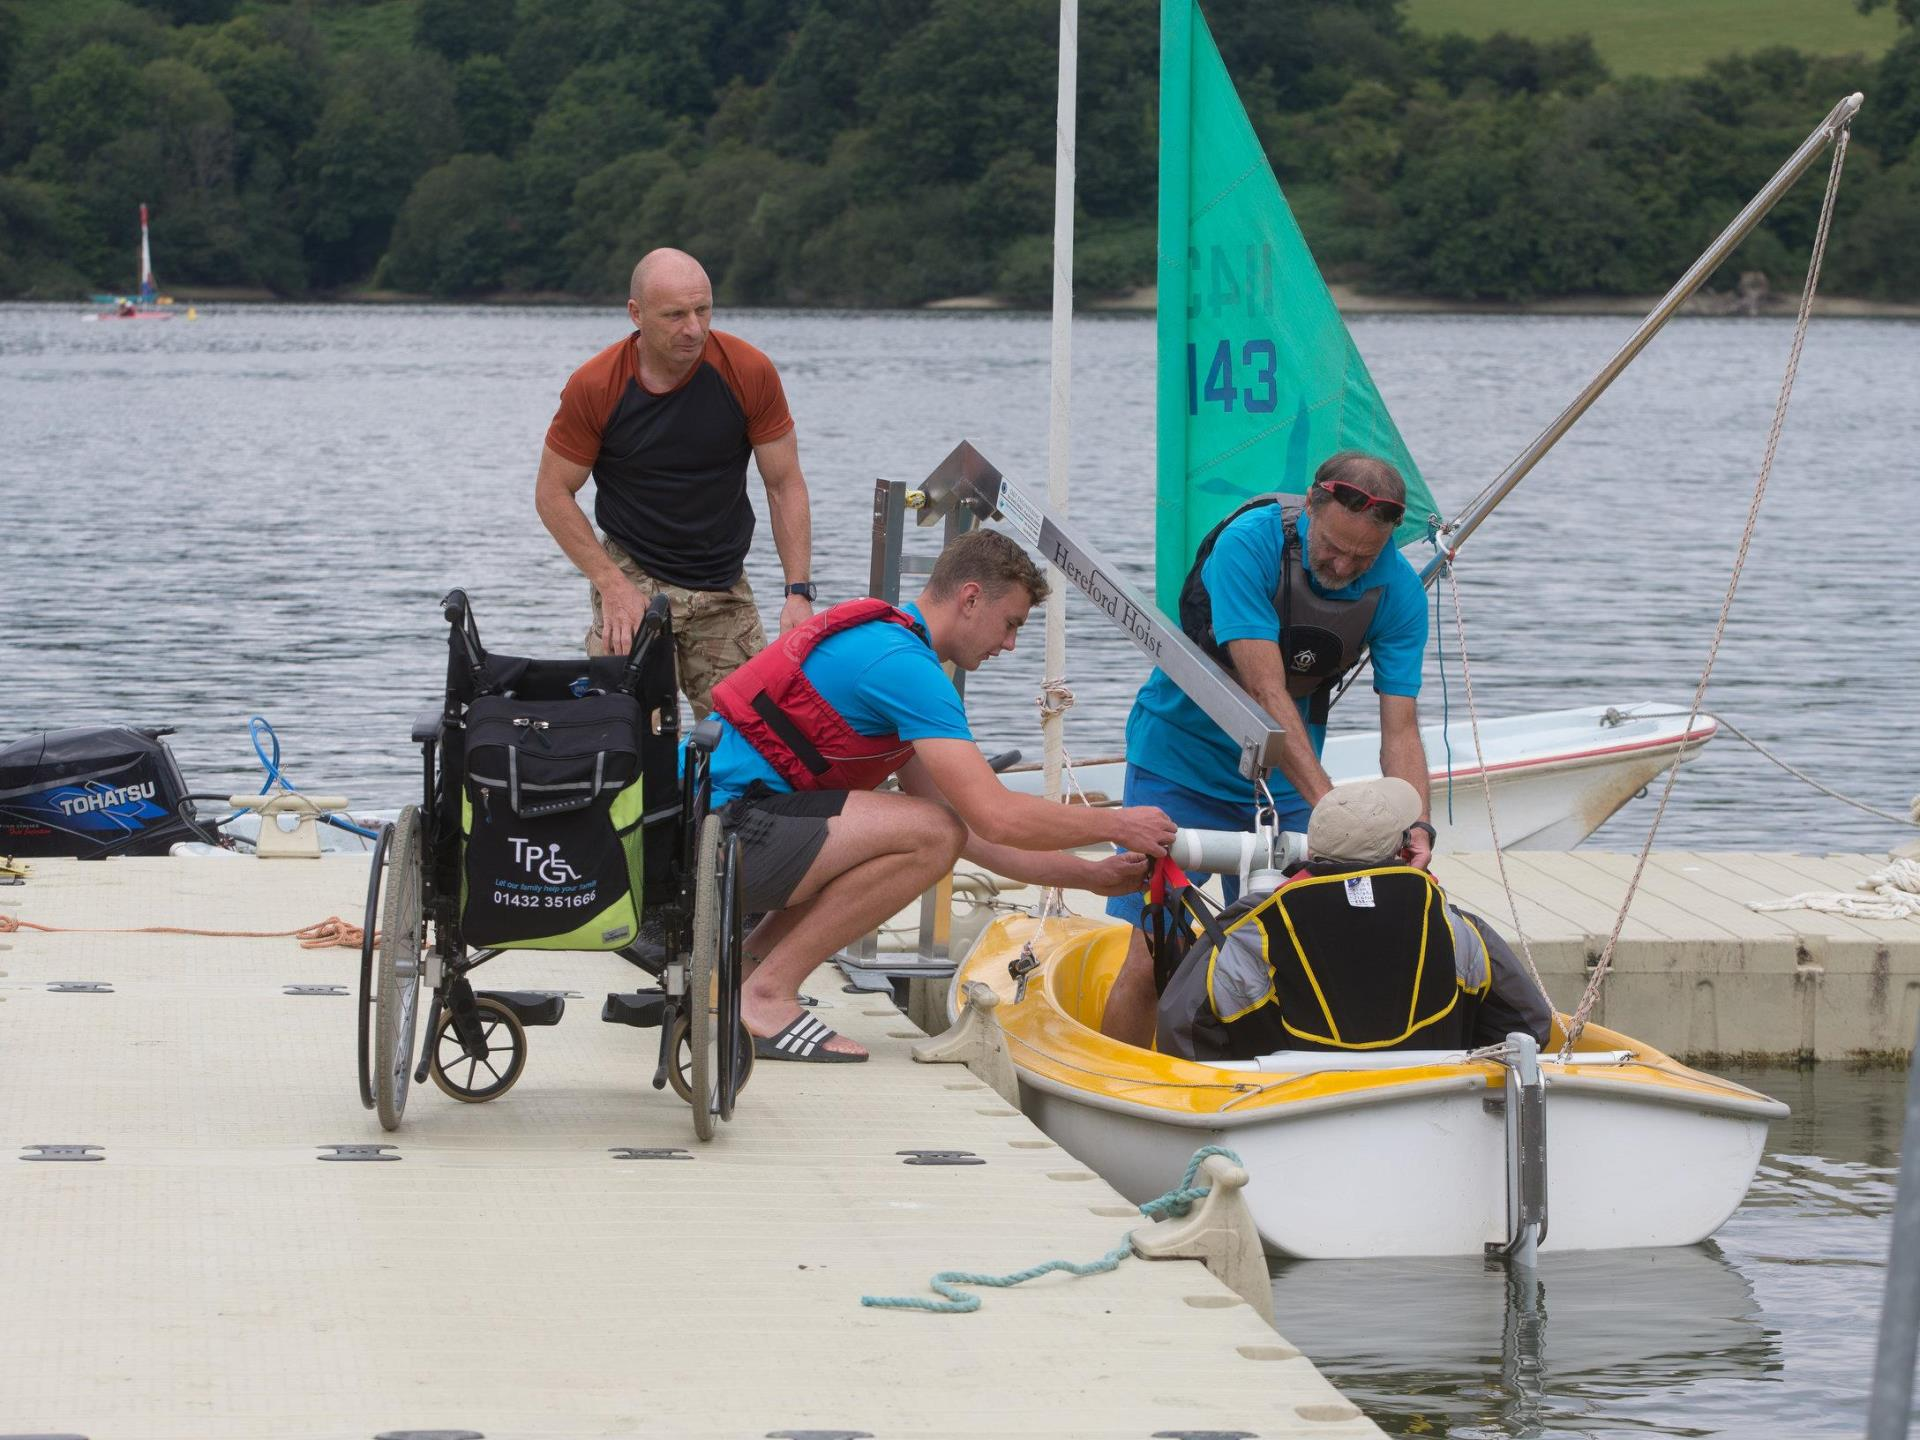 Sailability at Llandegfedd Lake